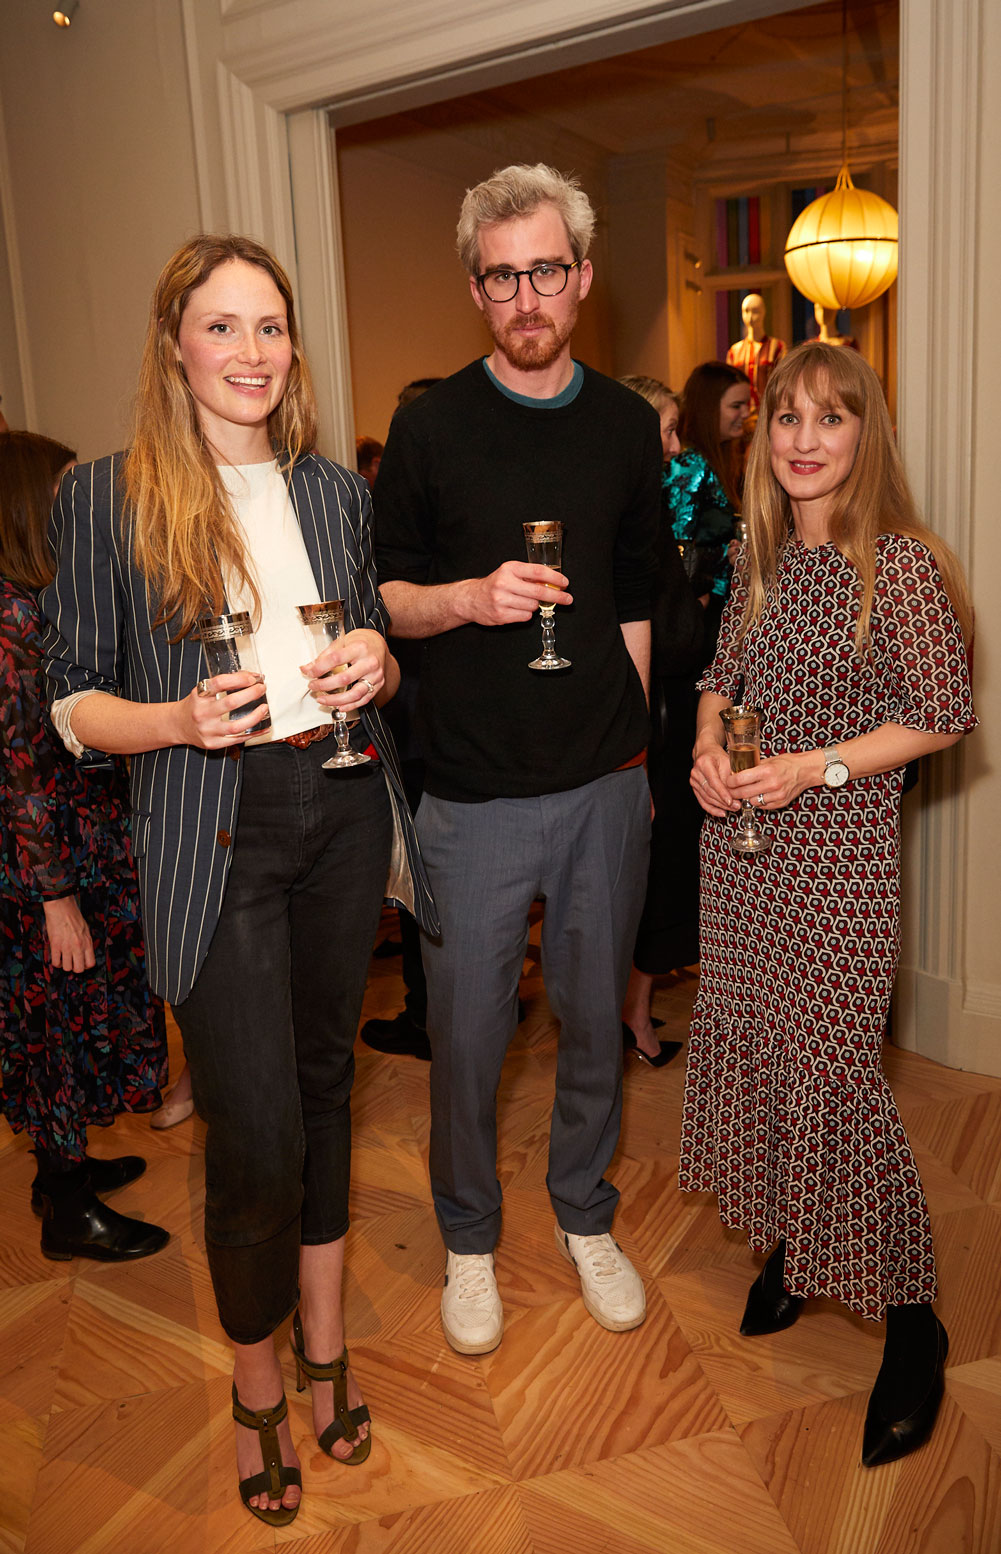 Cath and Jeremy Brown and Jessica Doyle at the Interiors launch at MATCHESFASHION.COM in London